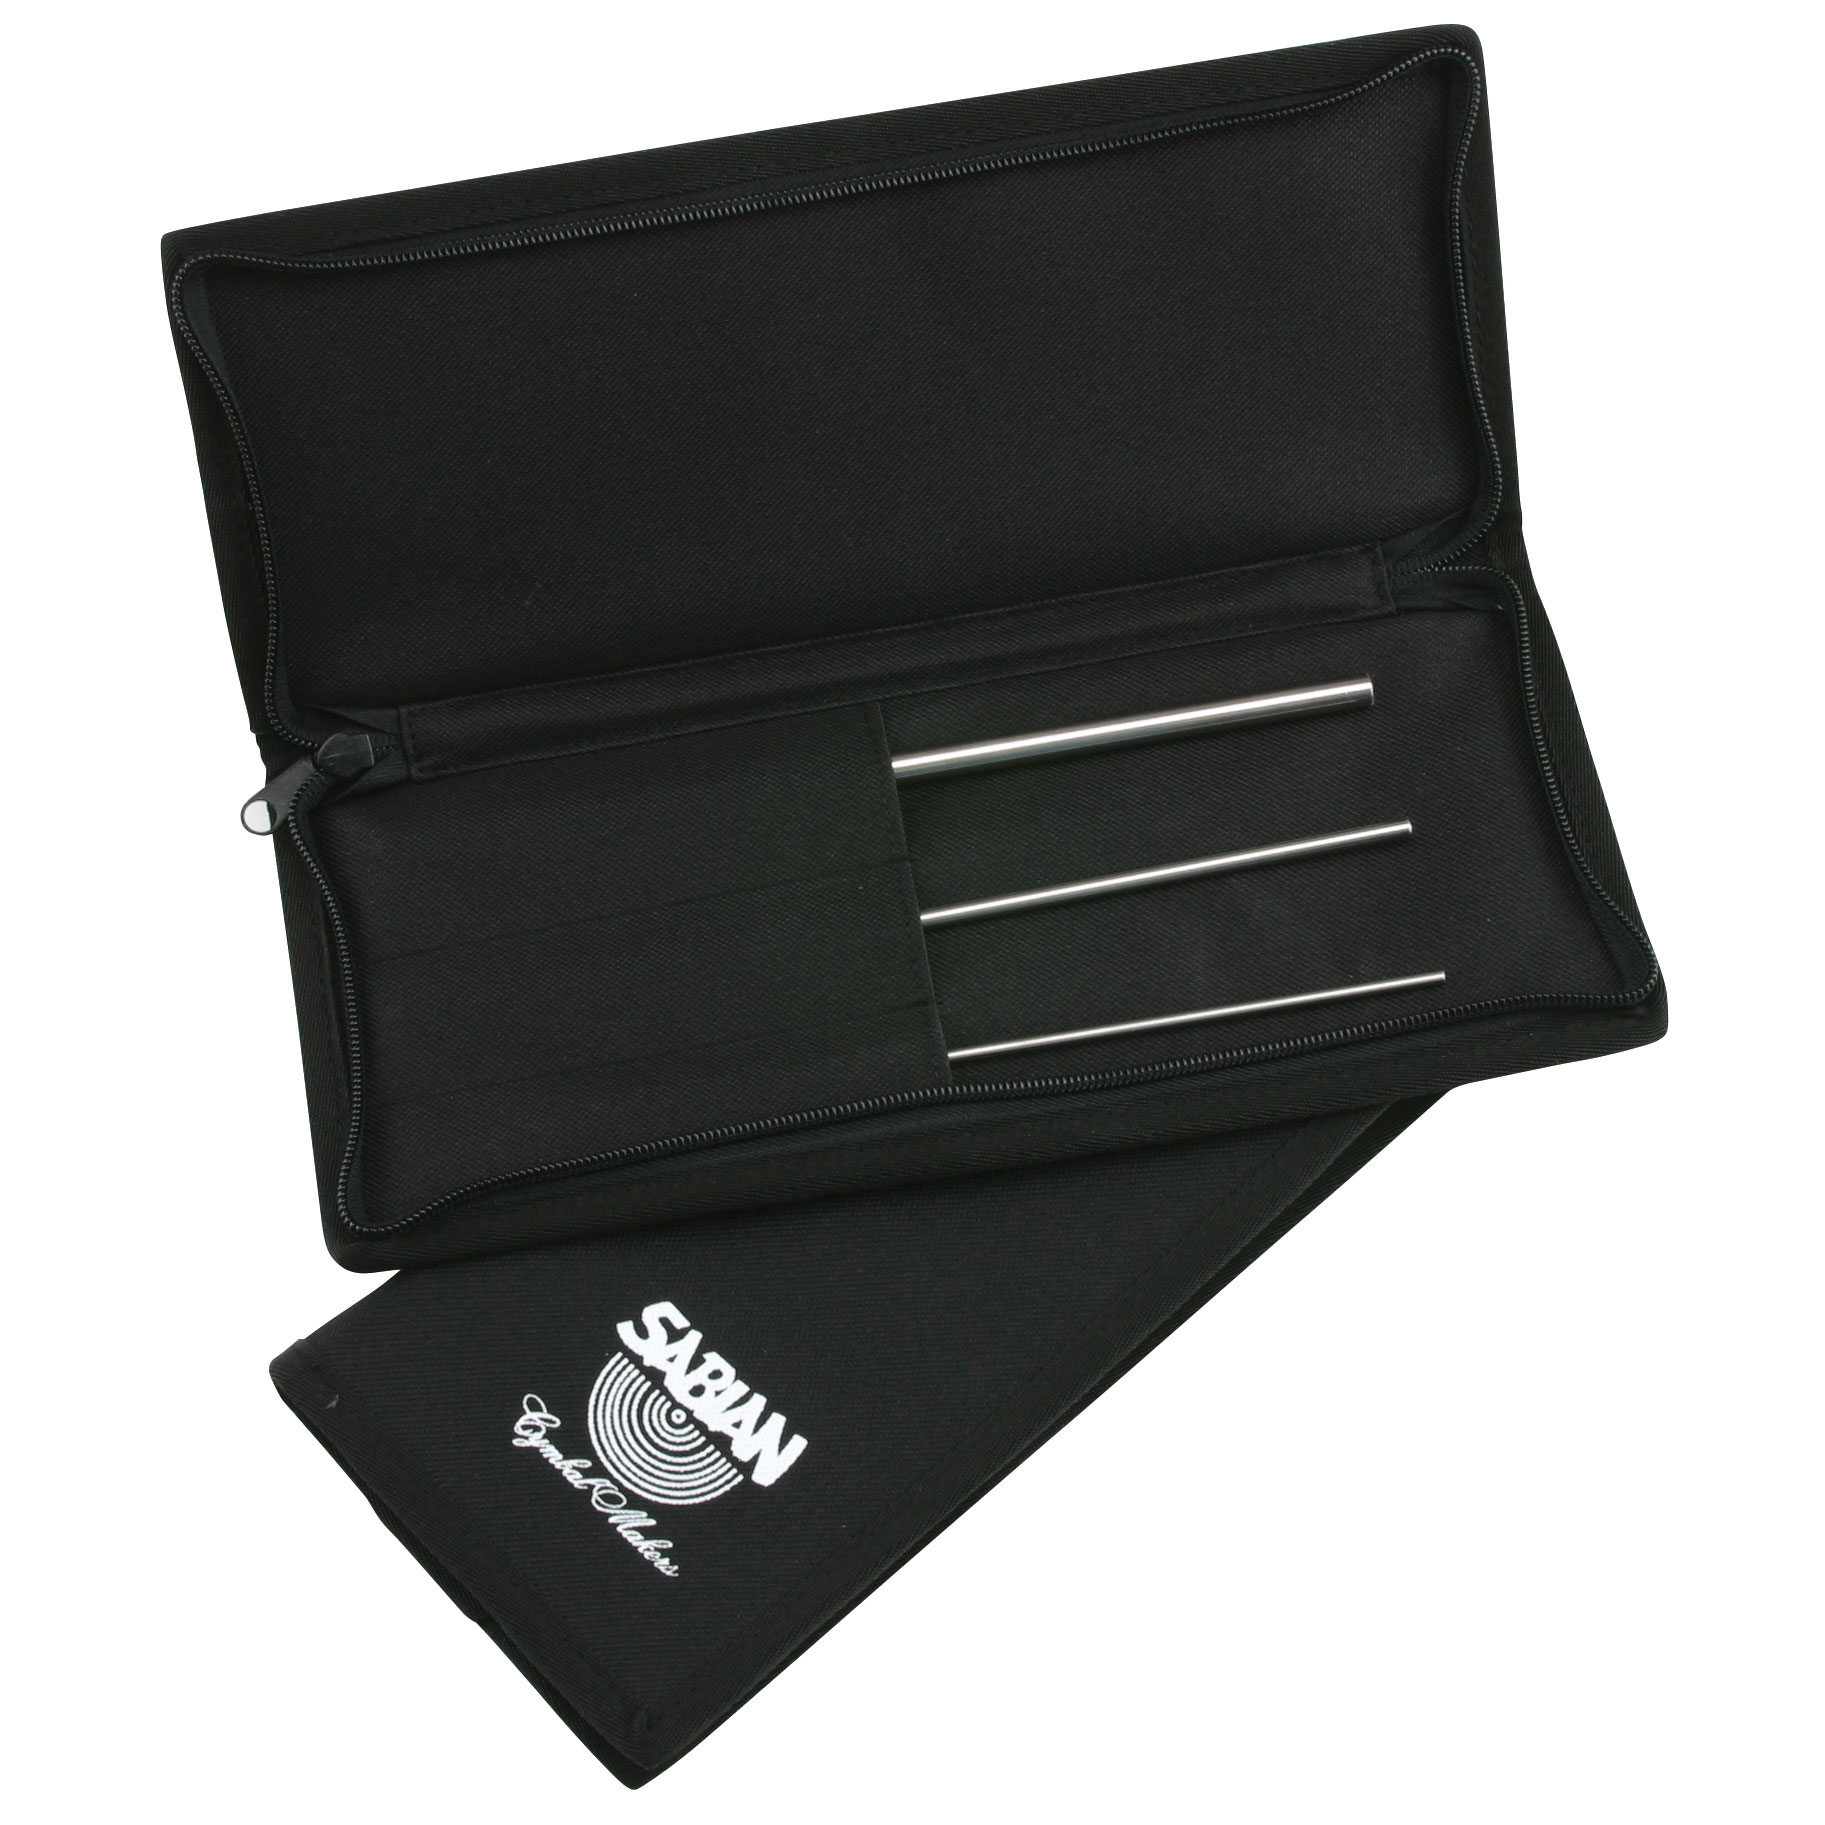 Sabian Triangle Beater Set with Bag